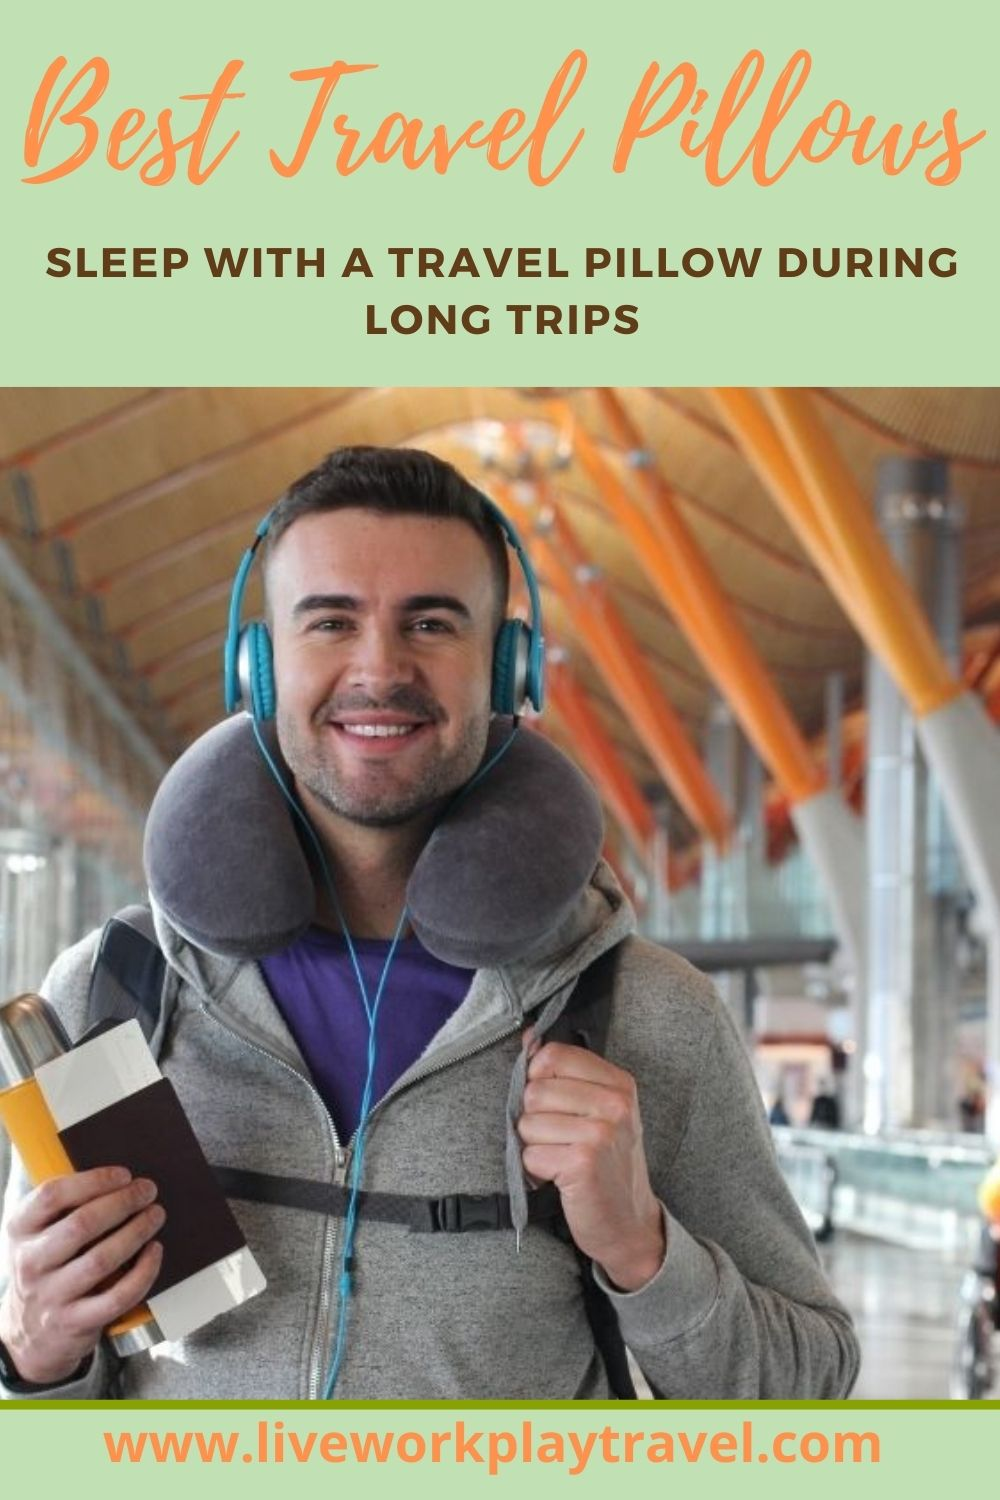 Man At Airport Wearing Travel Pillow For Comfort.